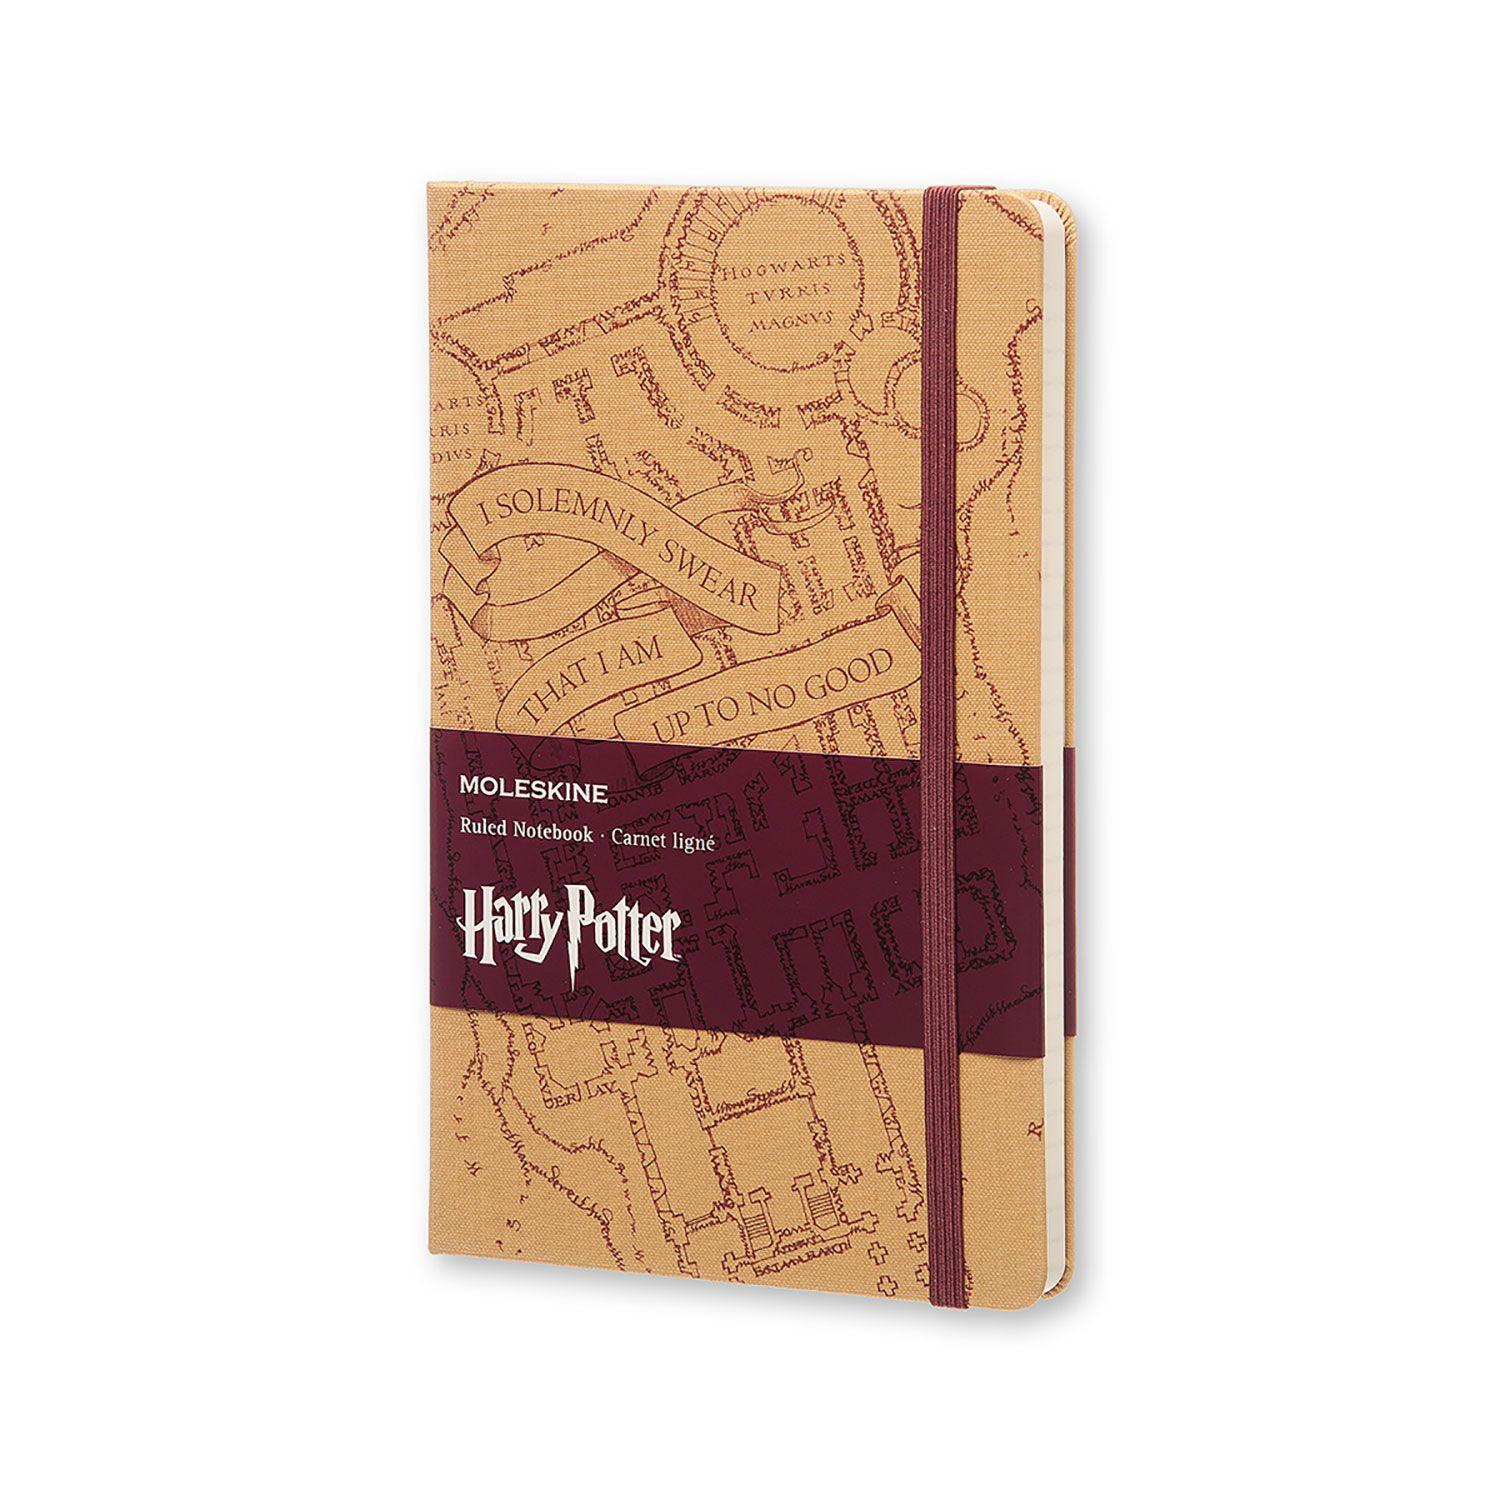 Barnes and noble has it too! Harry Potter - Limited Edition Notebook - Marauder's Map - Moleskine Online Store - Moleskine